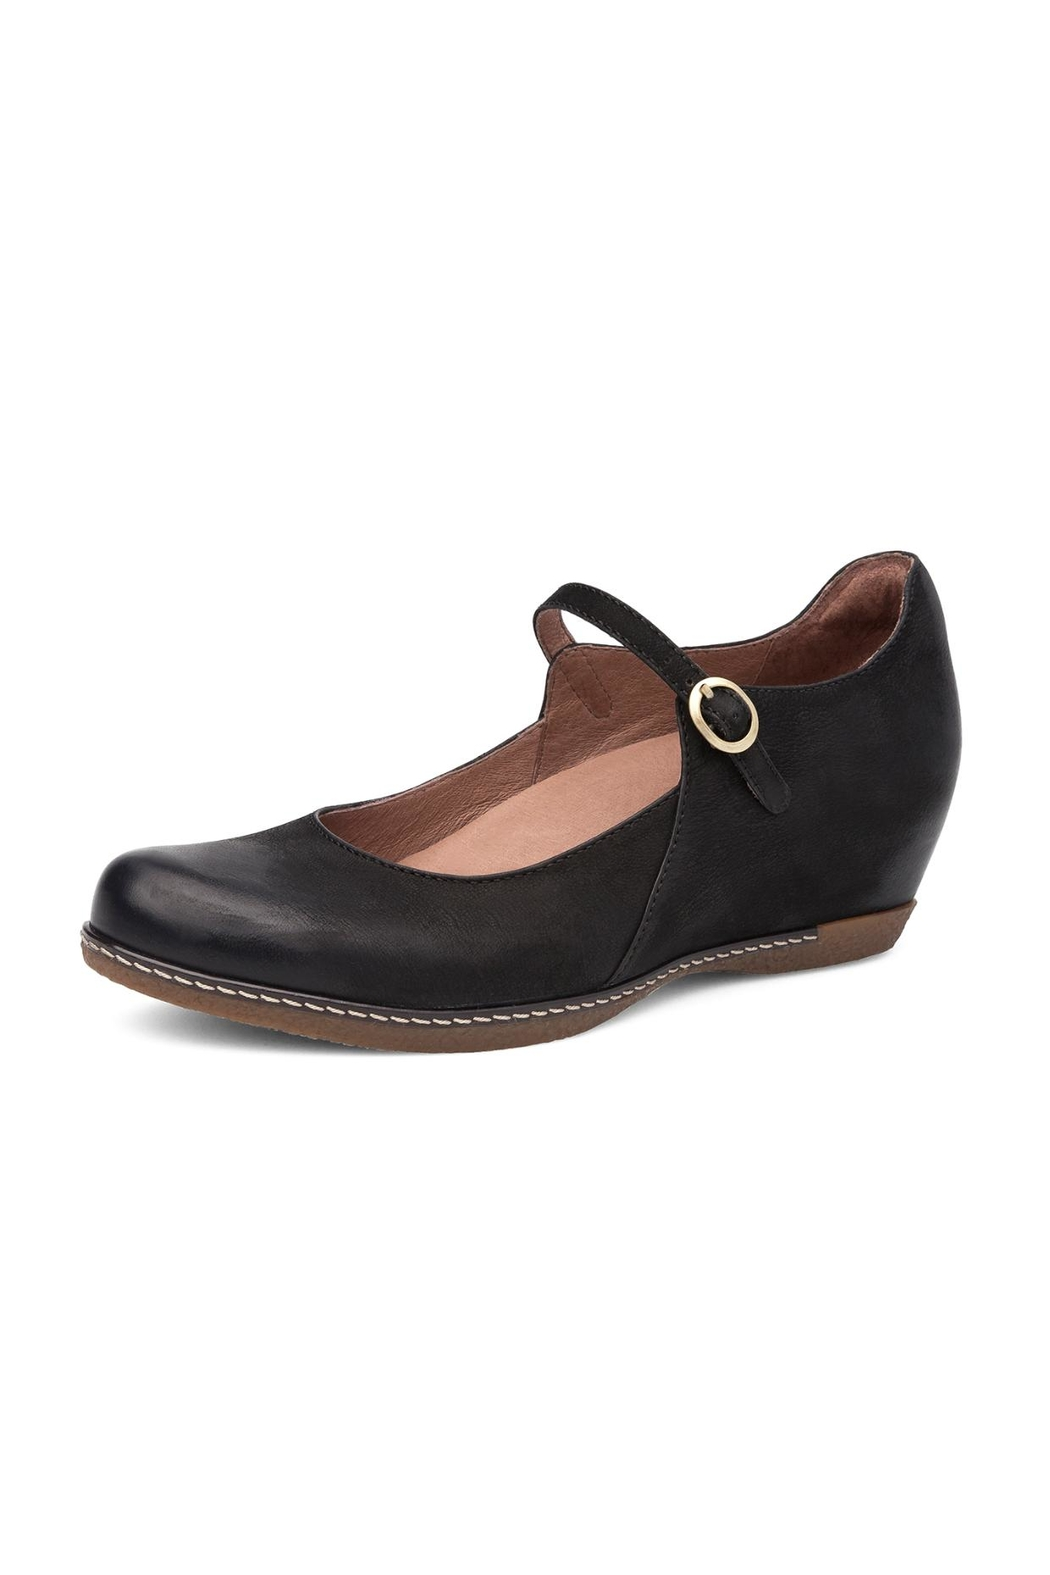 Dansko Loralie Maryjane Shoes - Front Cropped Image